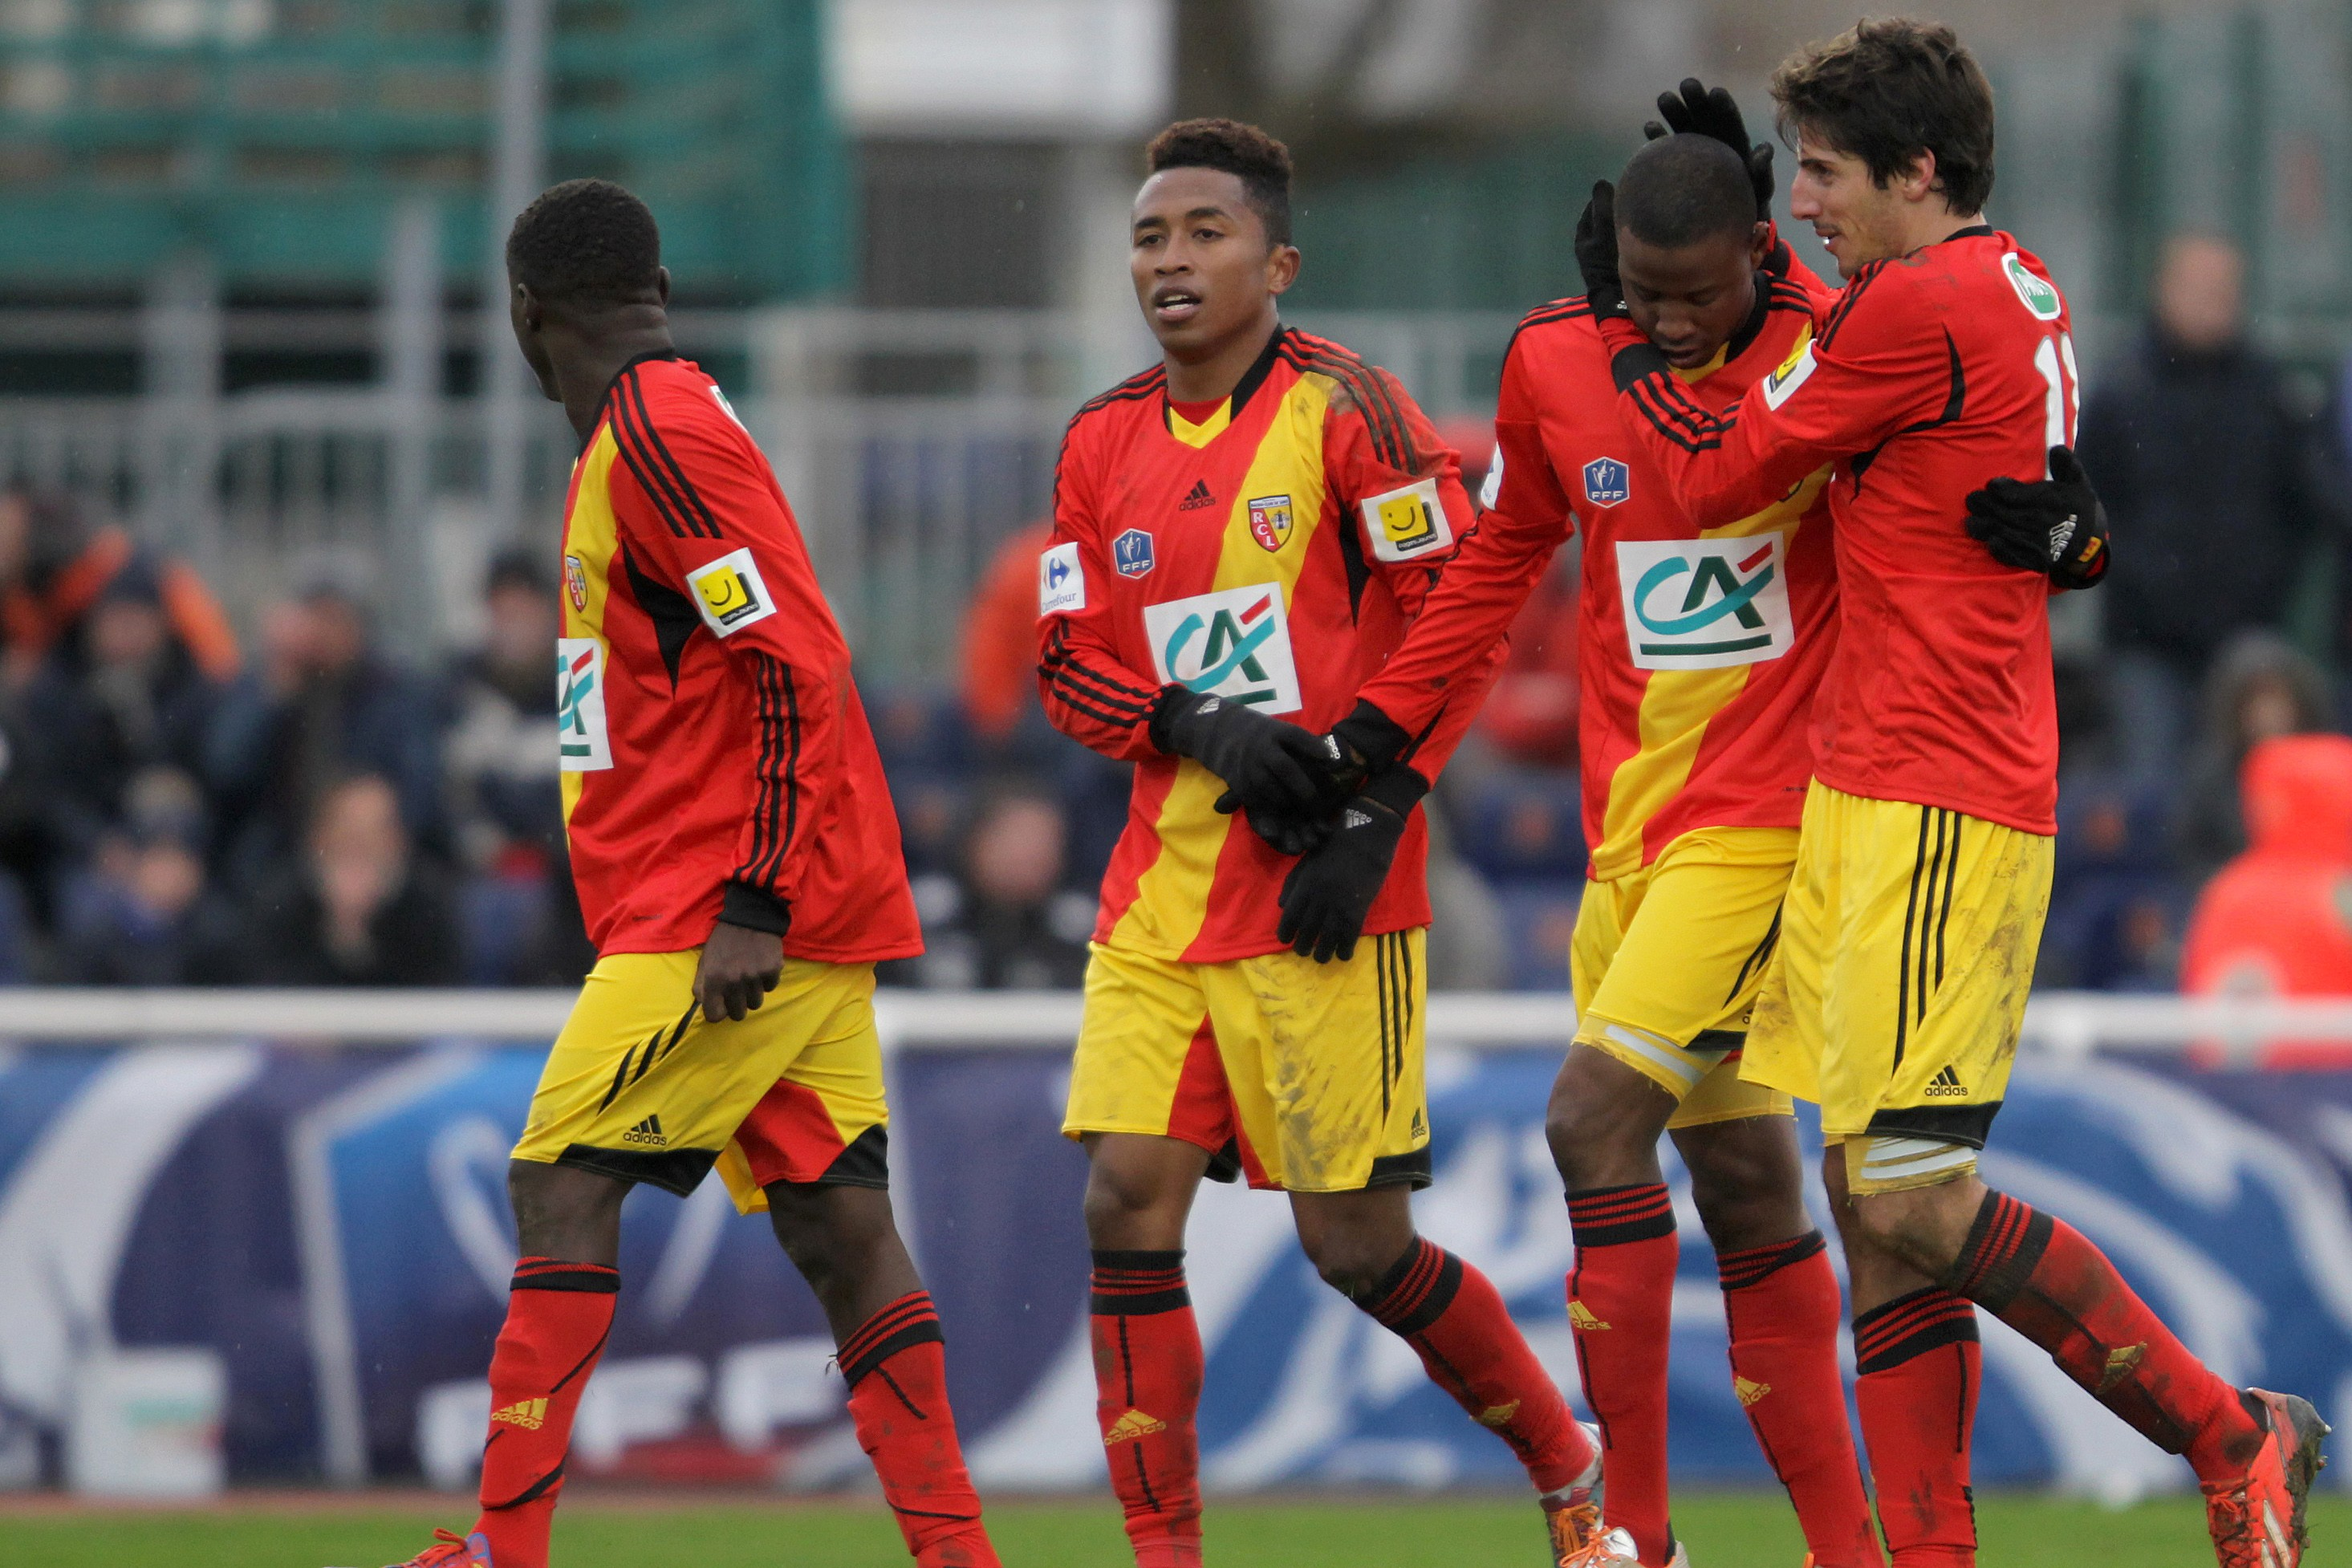 Match Evian TG vs RC Lens en direct streaming live